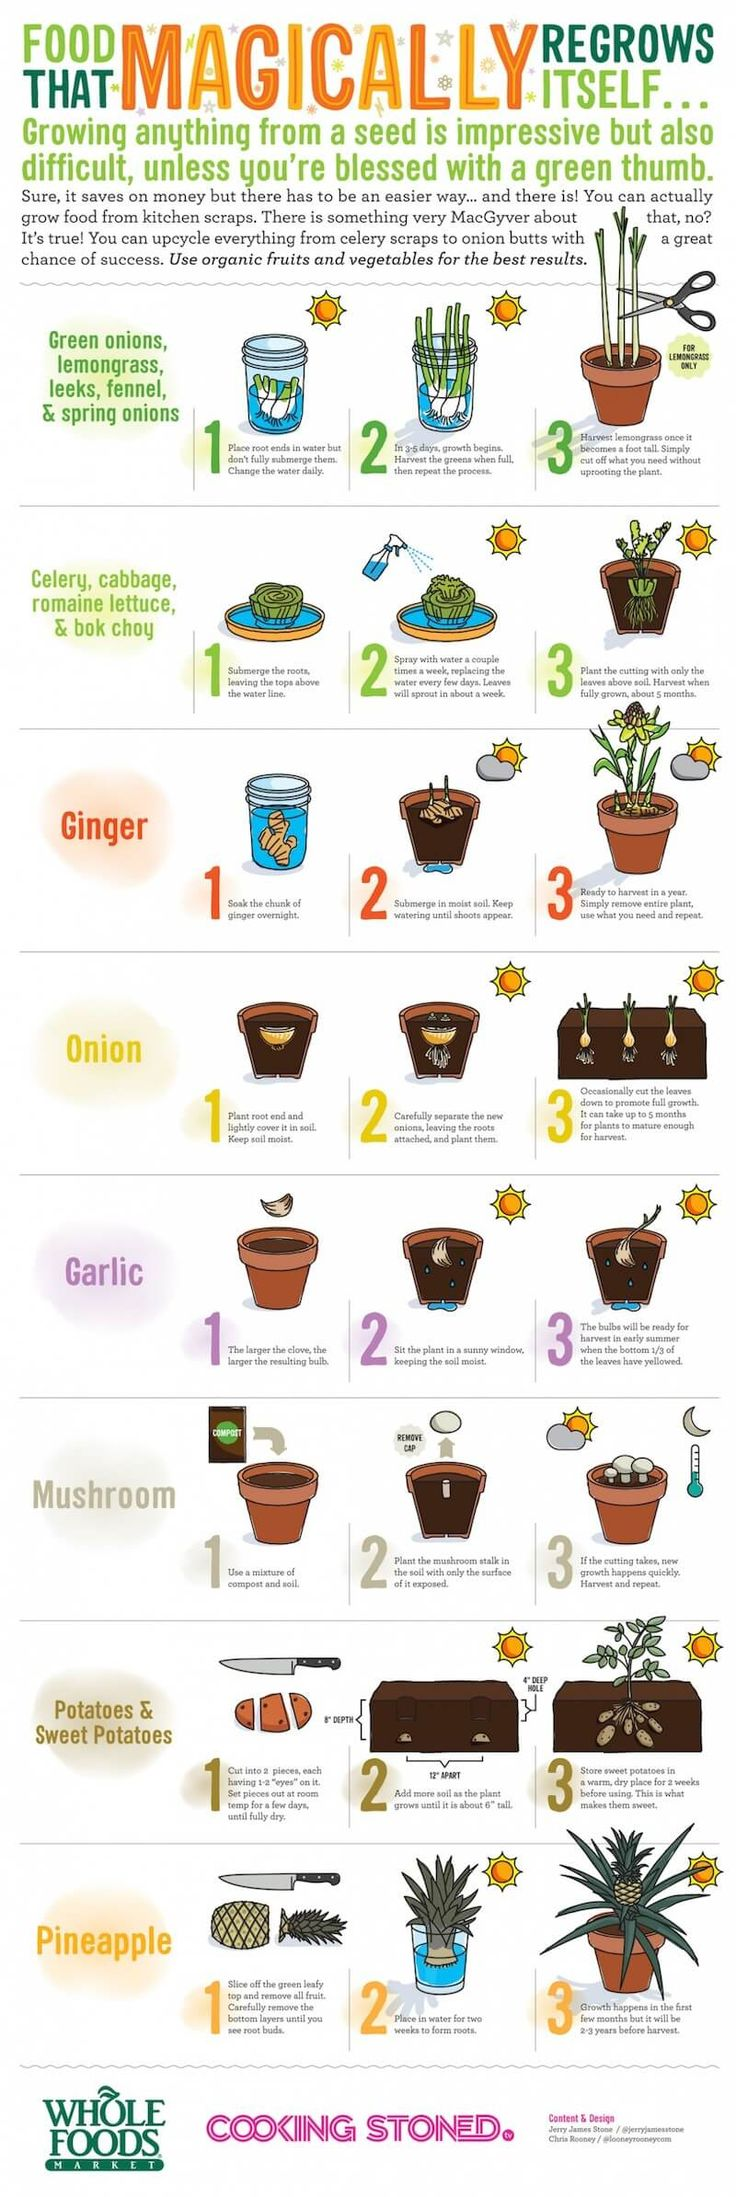 When you are on a budget, re-growing your food scraps is one of the best ways to save money! In fact, there are many vegetables you can grow from scraps, but here are just a few.